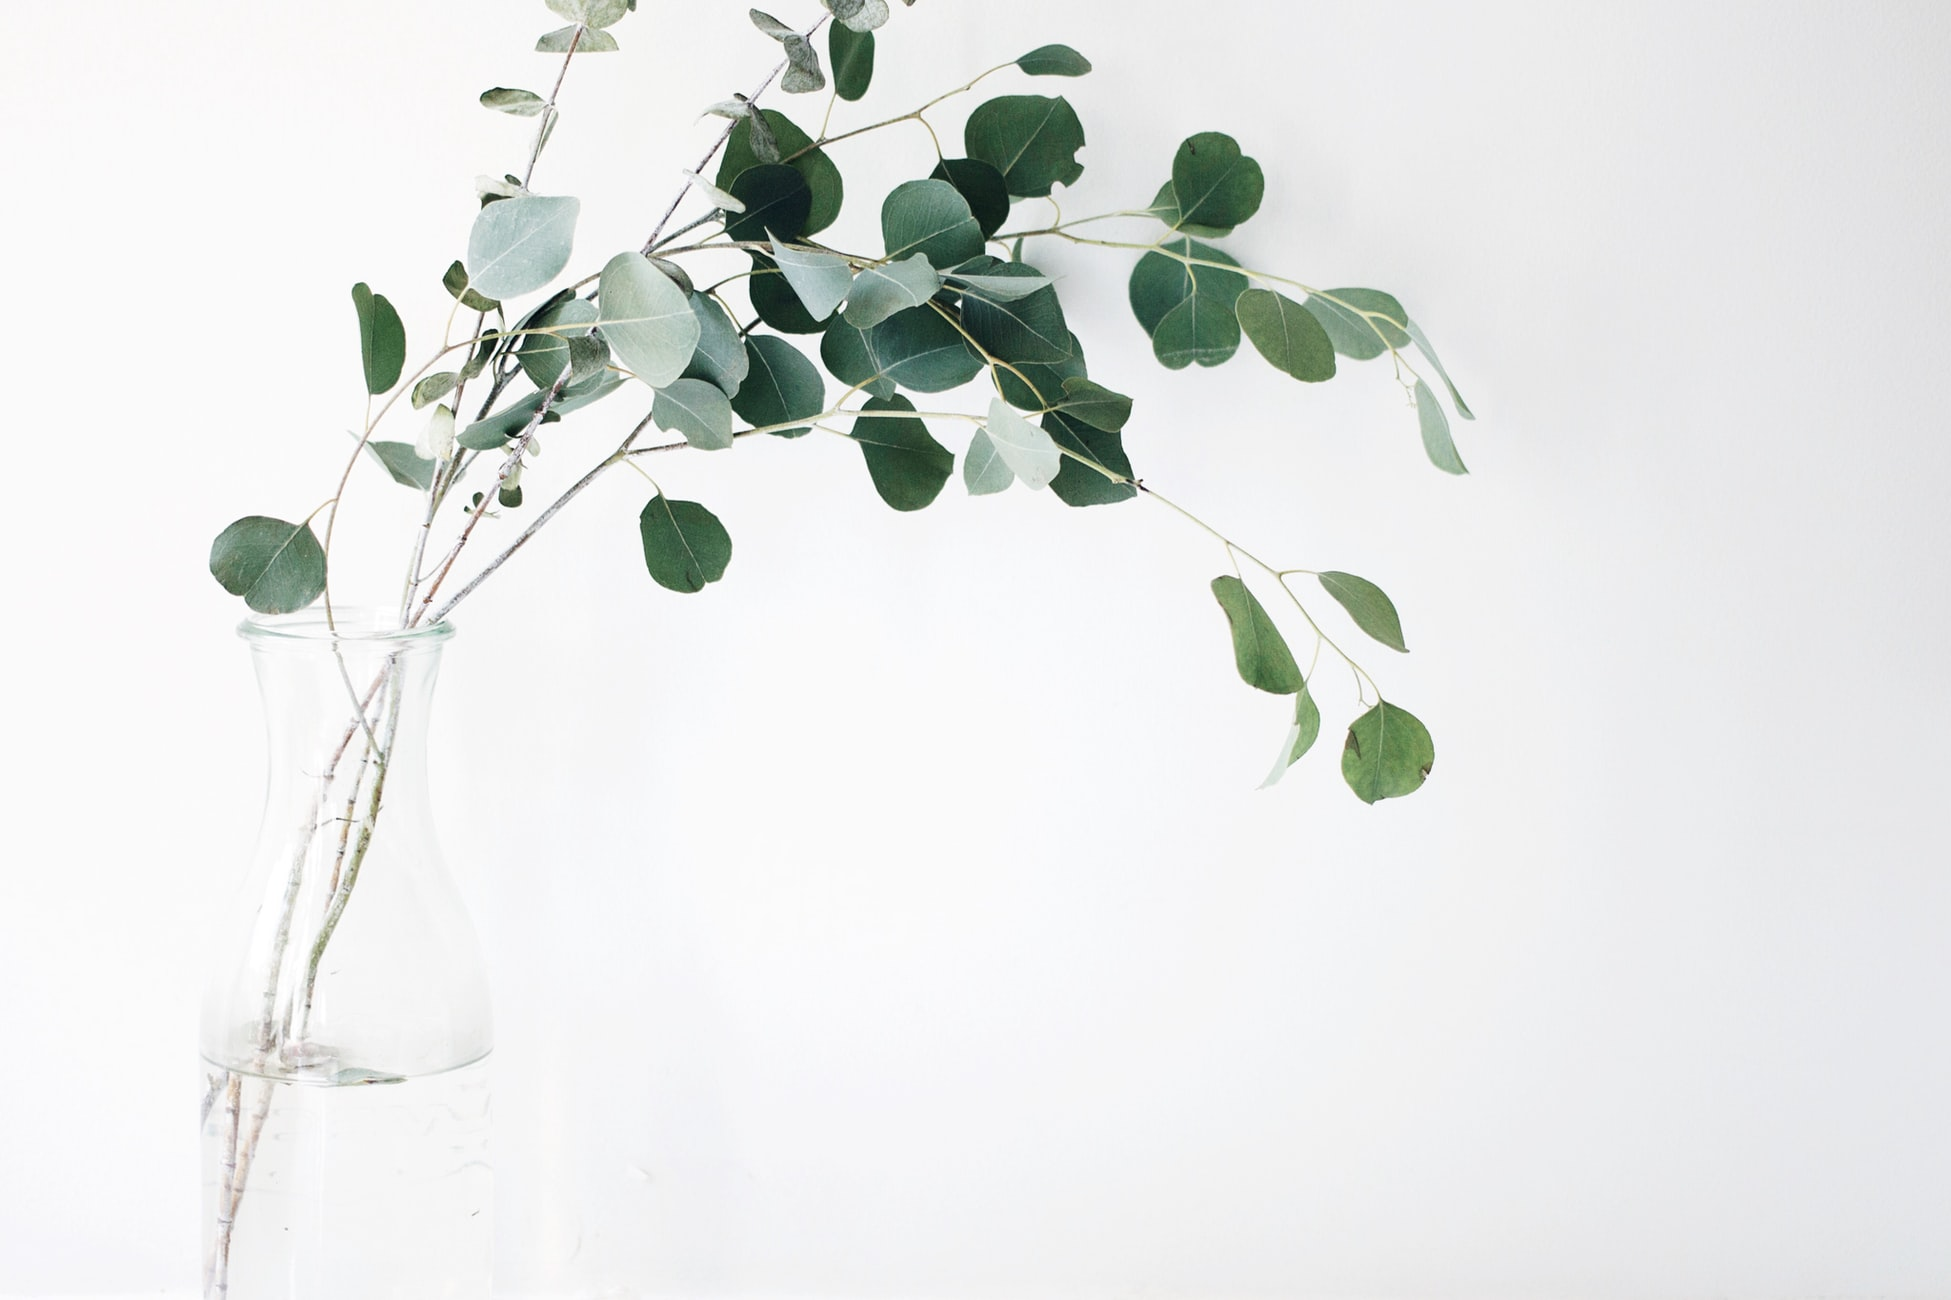 Elegant photo of flower stems and green leaves emerging from watering vase